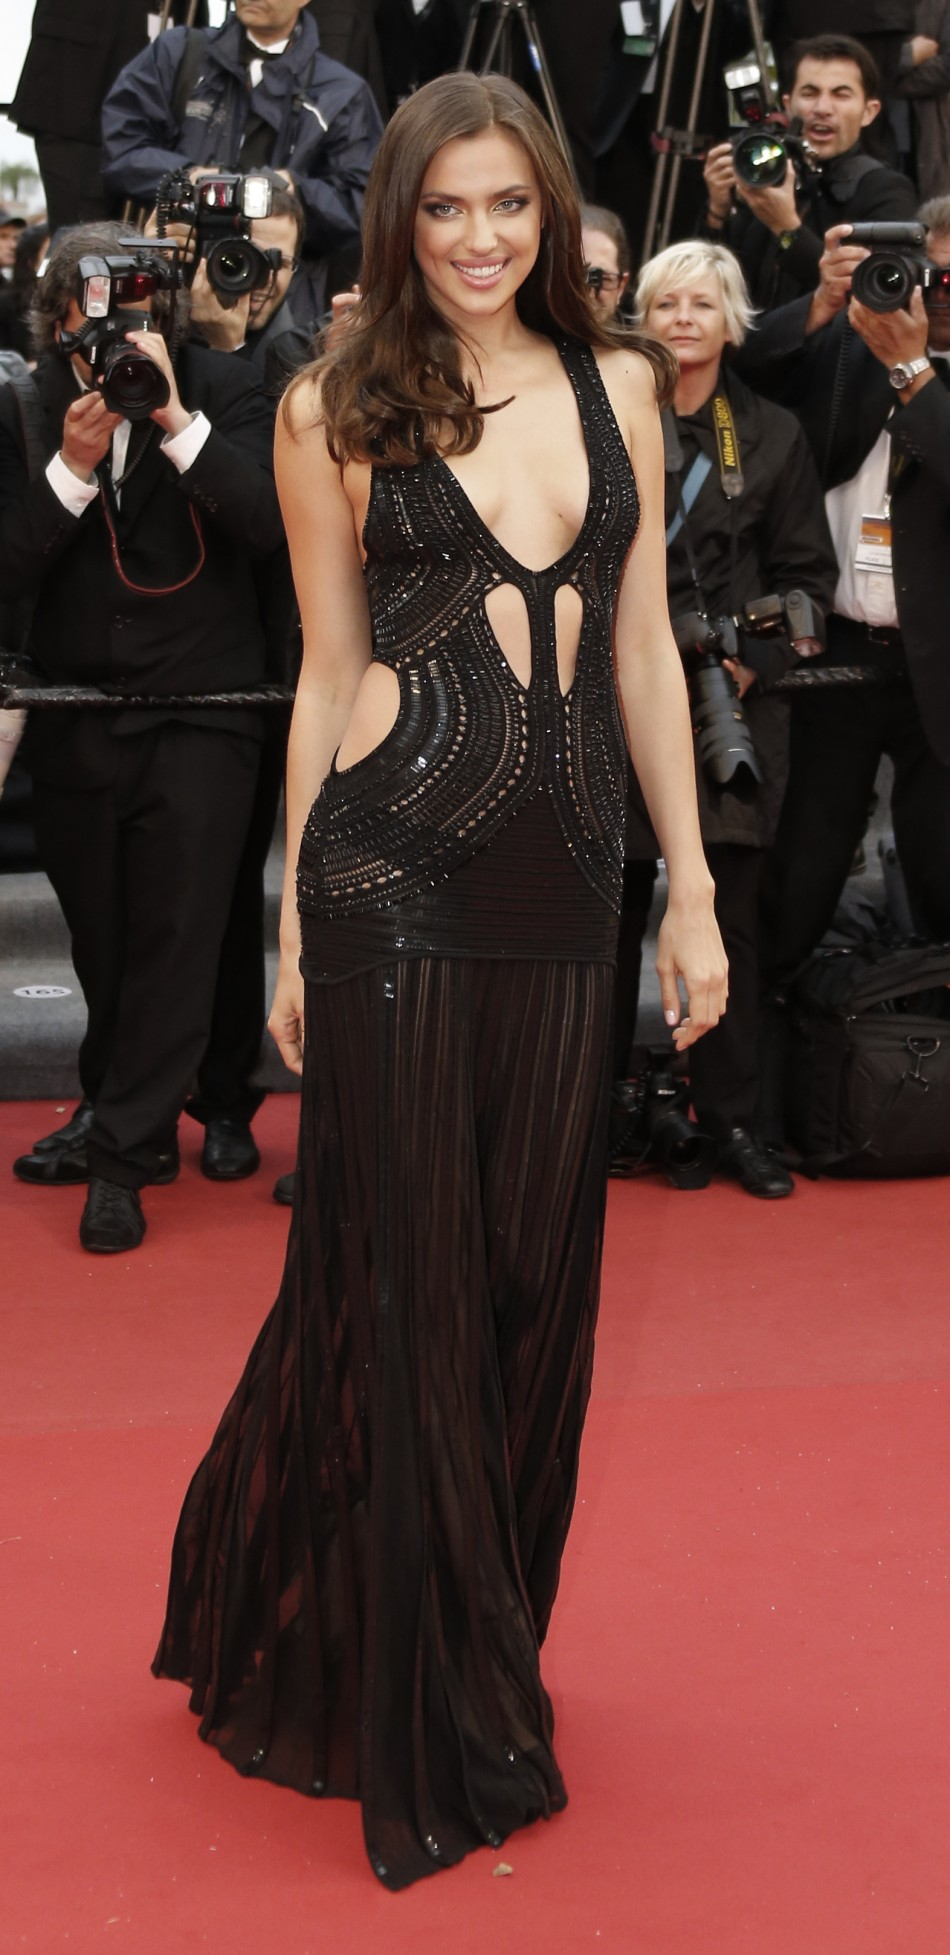 Model Irina Shayk poses on the red carpet as she arrives for the screening of the film All is Lost during the 66th Cannes Film Festival in Cannes May 22, 2013.